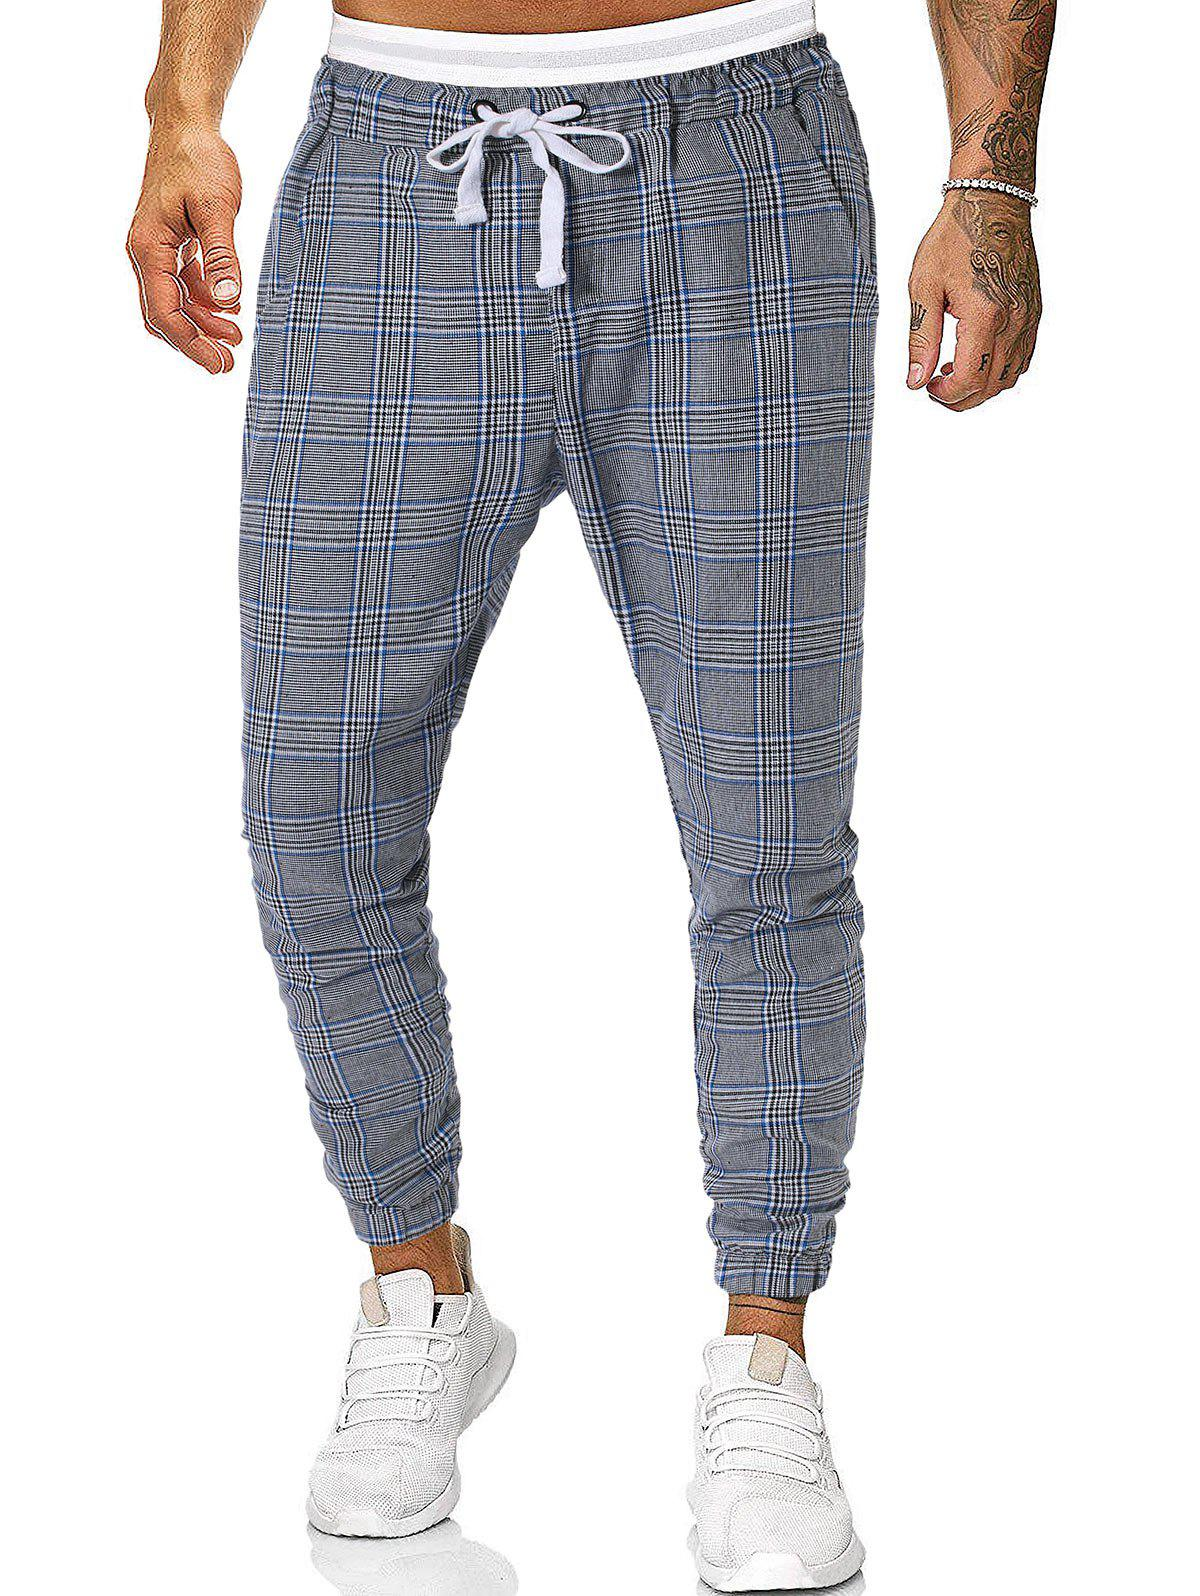 Online Houndstooth Plaid Print Casual Jogger Pants